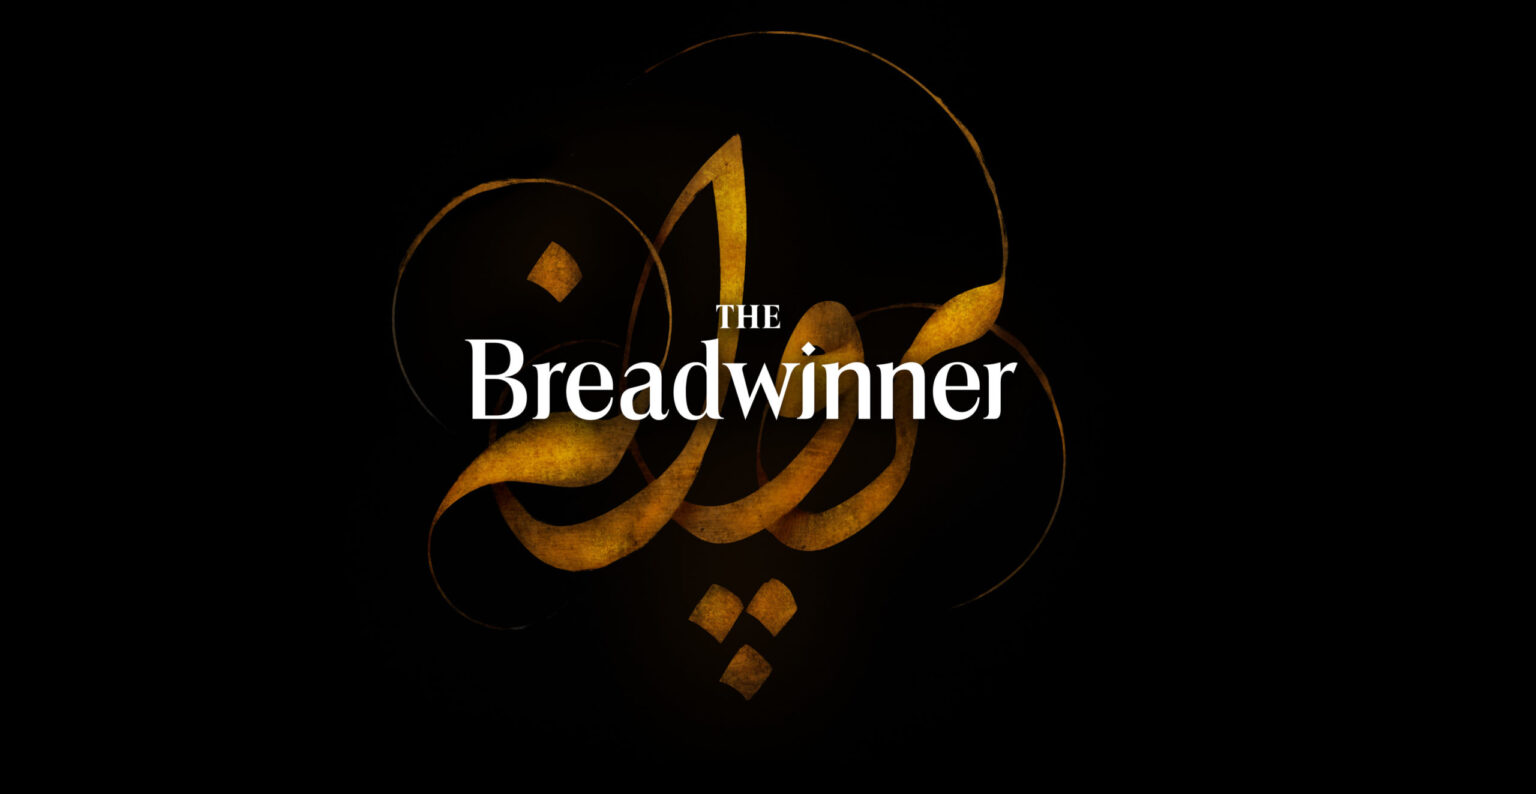 The-Breadwinner-new-text-scaled.jpg